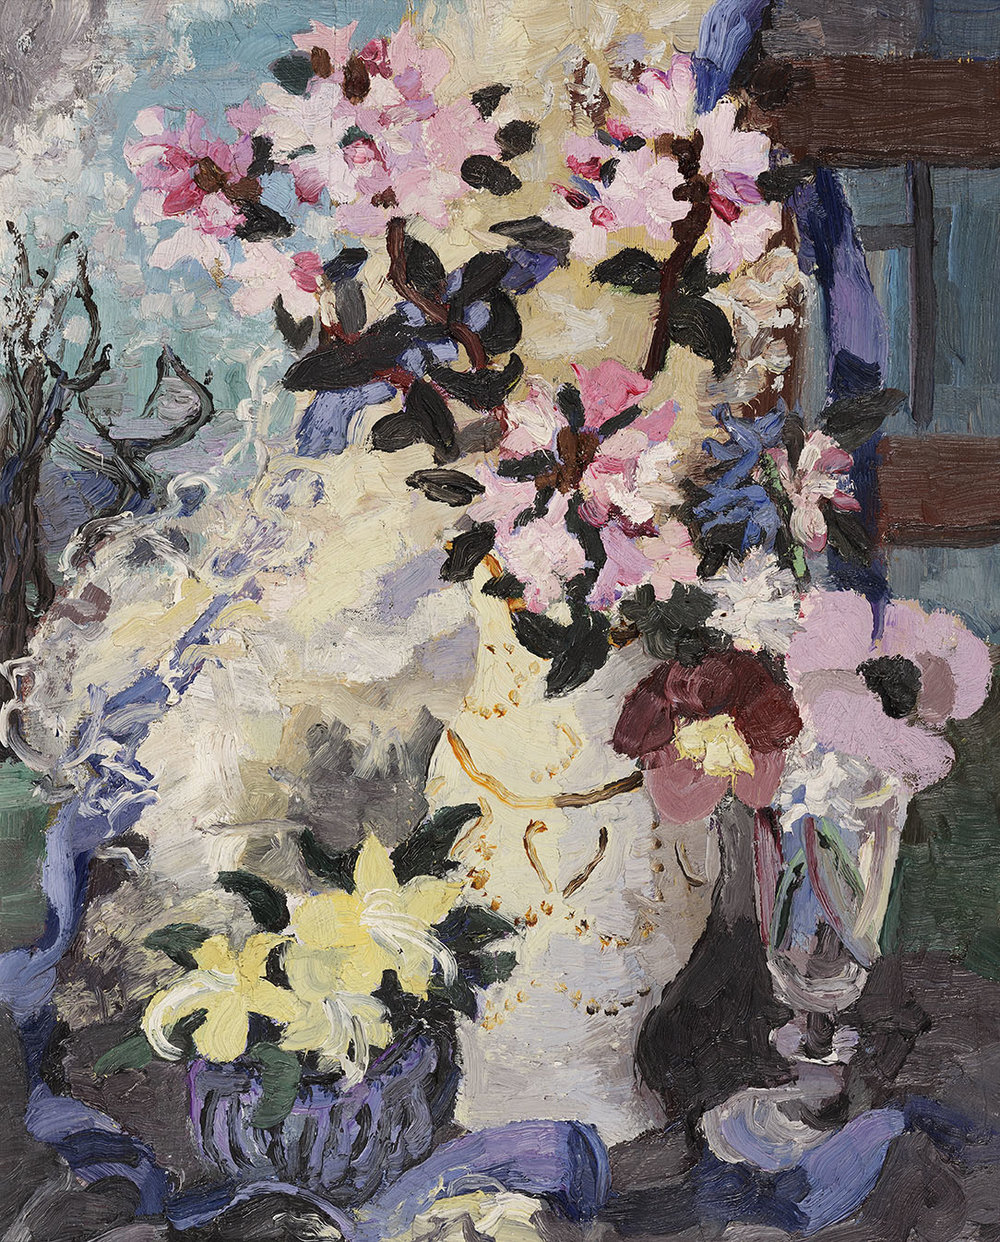 Lucy Harwood (1893-1972)    Spring Flowers,  c. 1962, Oil on canvas, 20 x 16 in  [CAS 4] Gift from John Bensusan-Butt in 2001